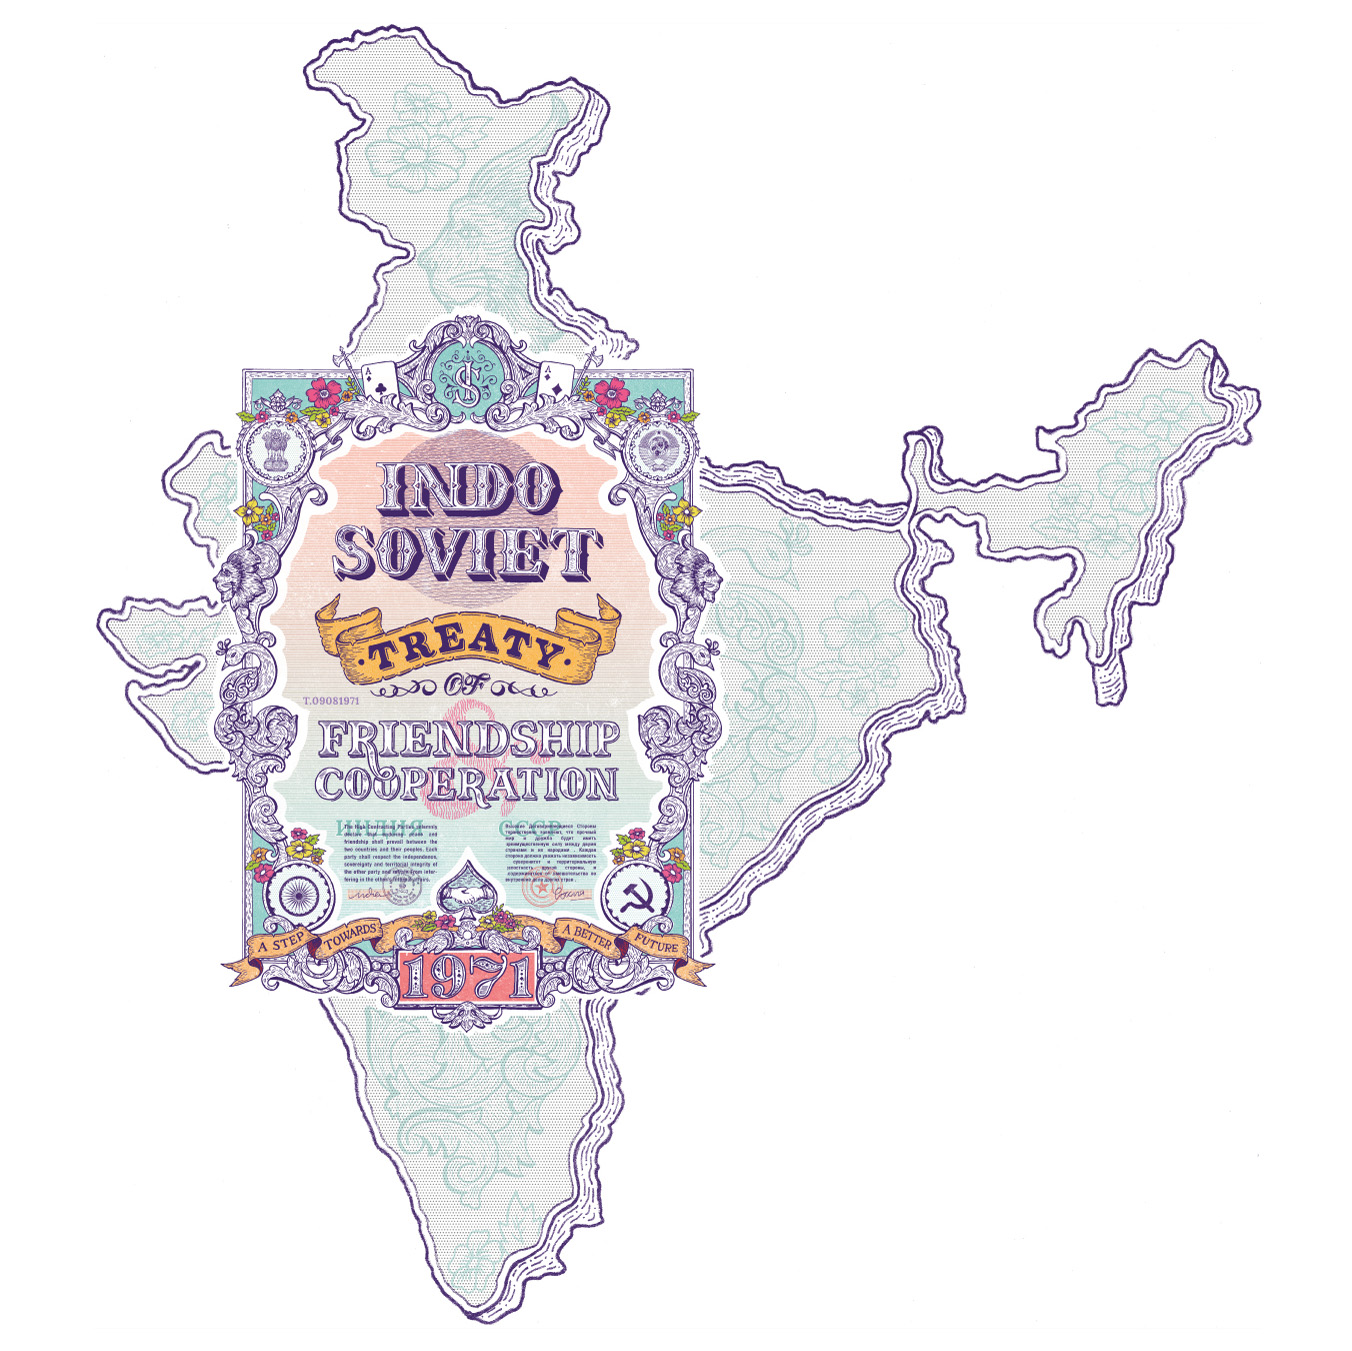 """1971 : """"The Indo–Soviet Treaty of Peace, Friendship and Cooperation was a treaty signed between India and the Soviet Union in August 1971 that specified mutual strategic cooperation. The final piece is going to be a mix of type and illustrations that will take to the past of handcrafted masterpieces."""" ~ Niteesh Yadav"""